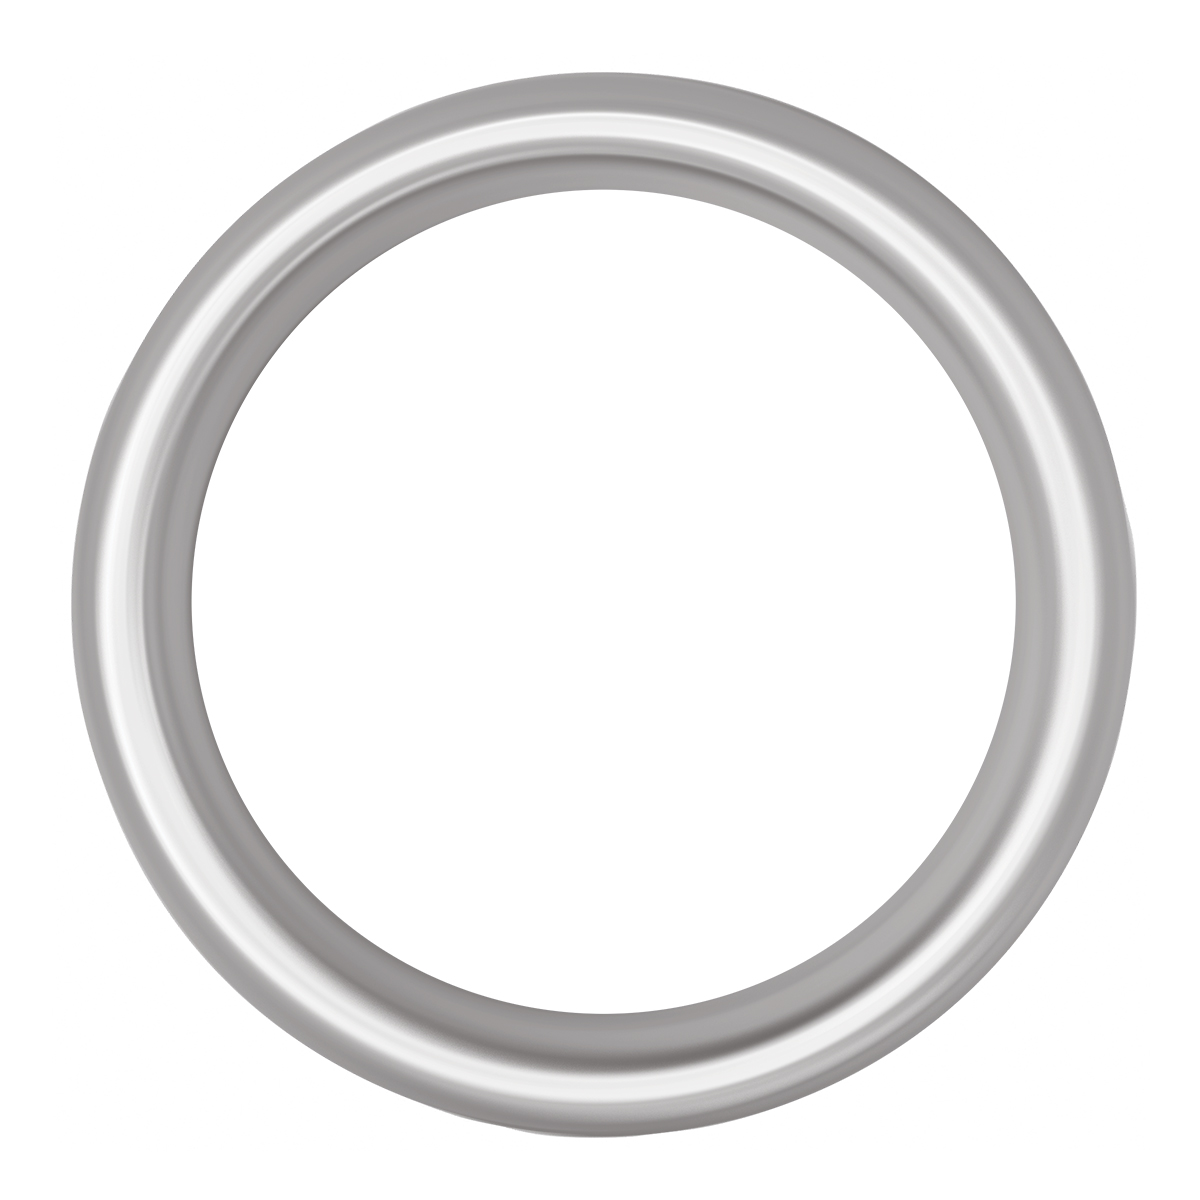 68221 Chrome Plastic Pyrometer Snap-On Gauge Cover for KW